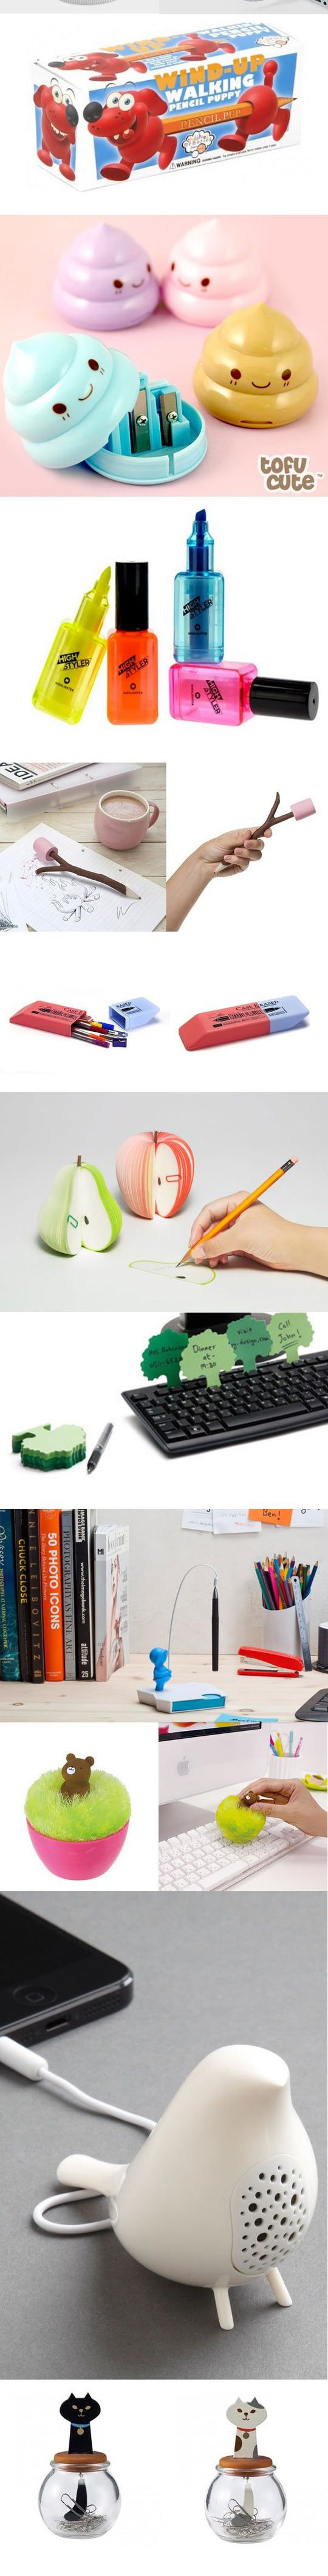 25 best Fun office supplies ideas on Pinterest Cool office